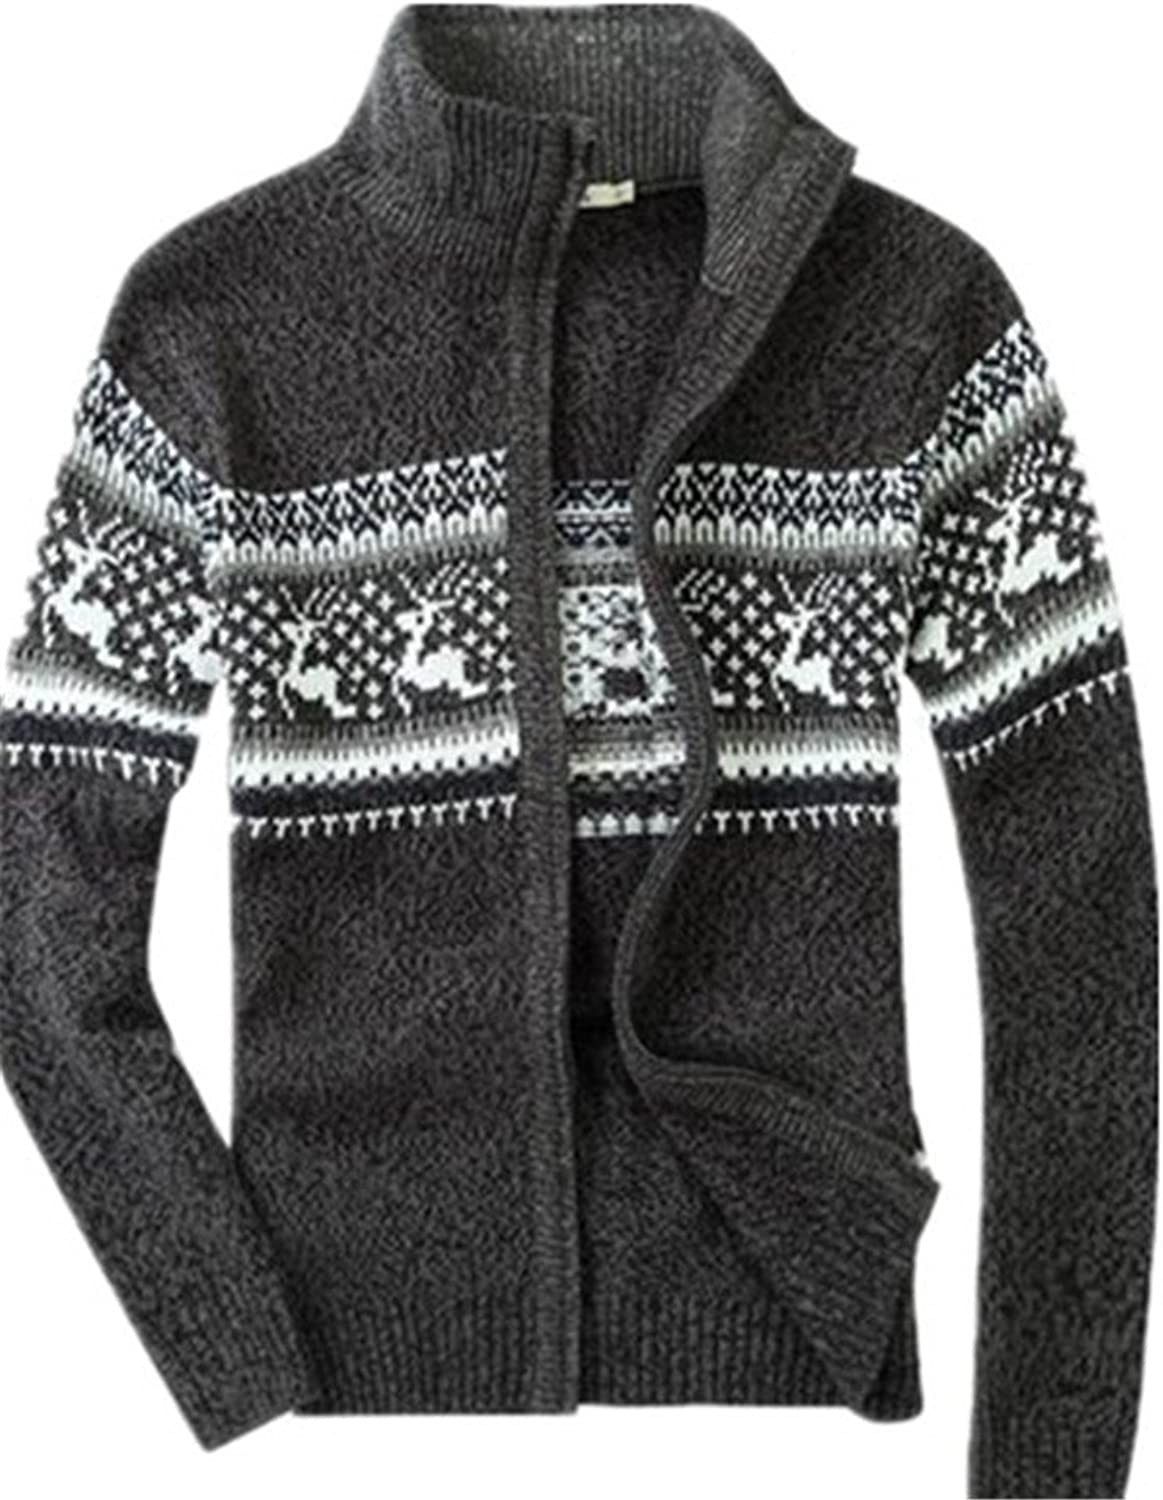 Men's Casual Slim Fit Thick Cardigan Fashion Full-Zip up Sweater